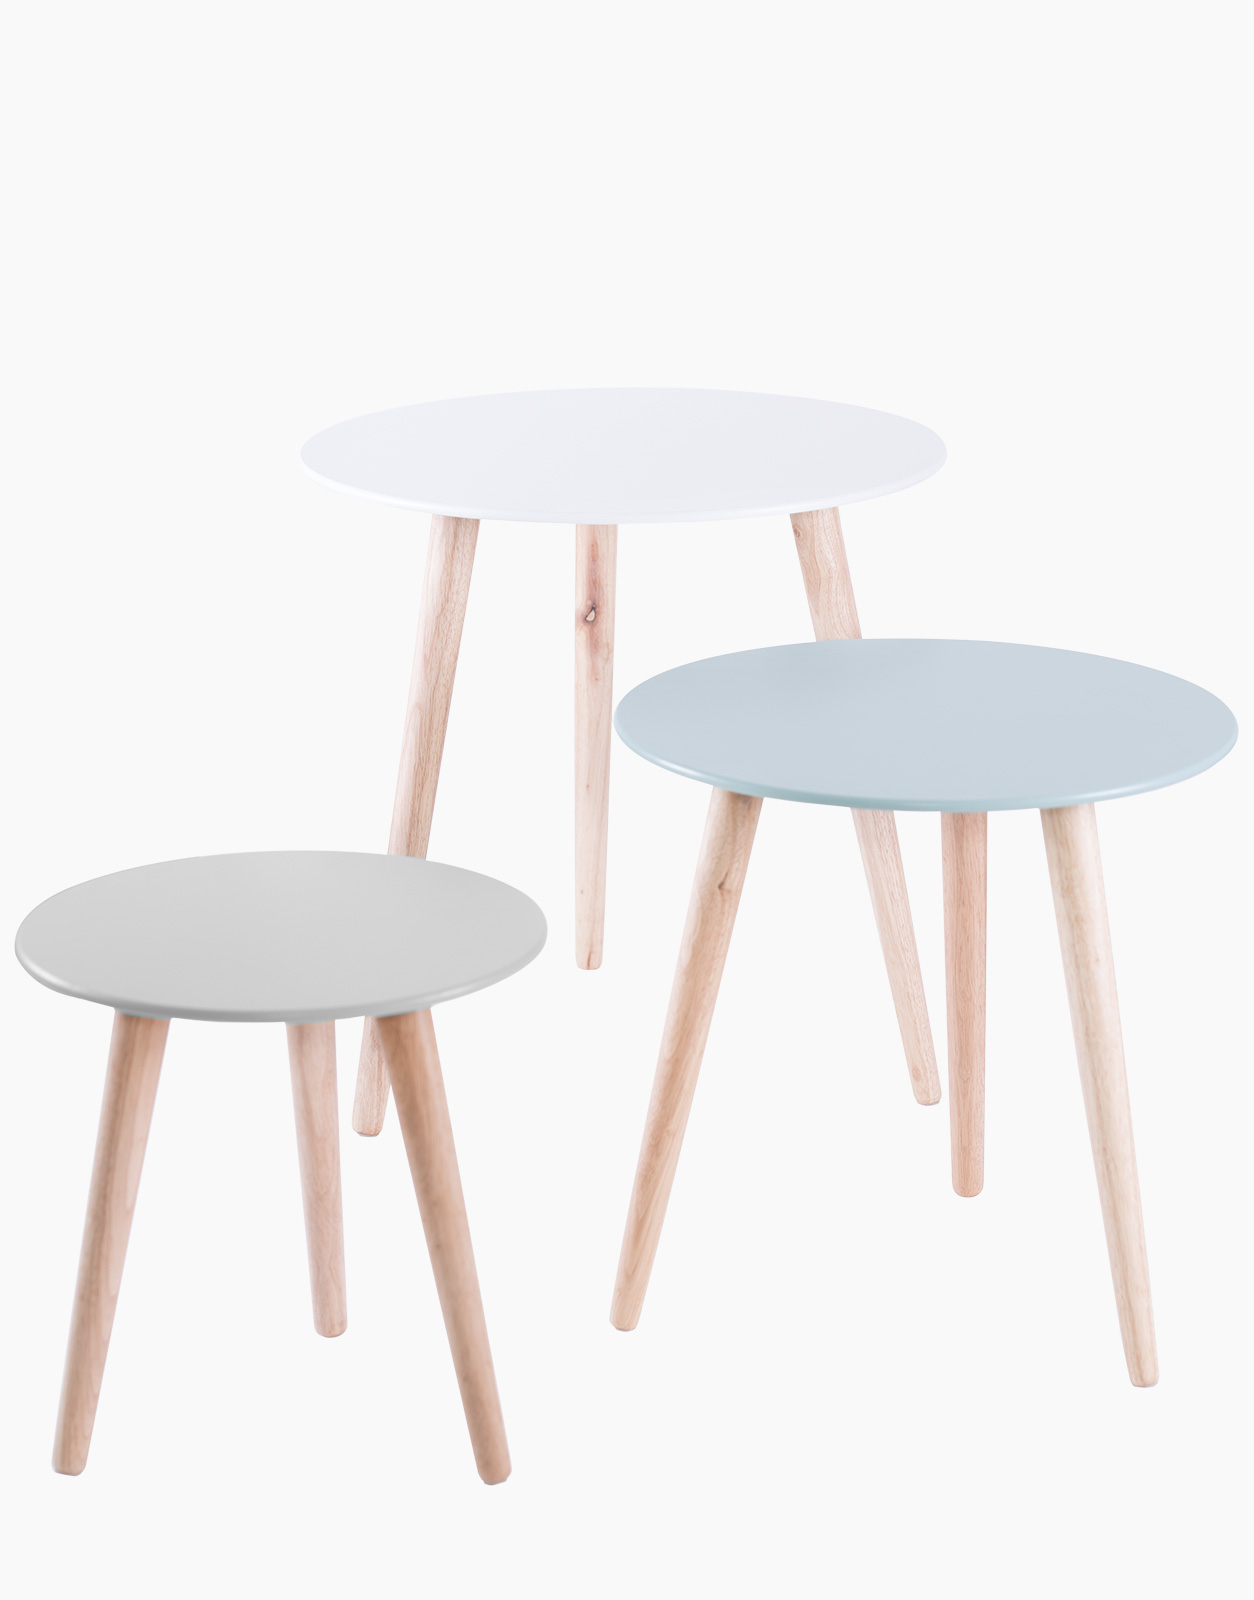 Salon De Jardin Scan Design Set Of 3 Stockholm Nesting Tables Solution Design Fr Furniture Lighting Decoration